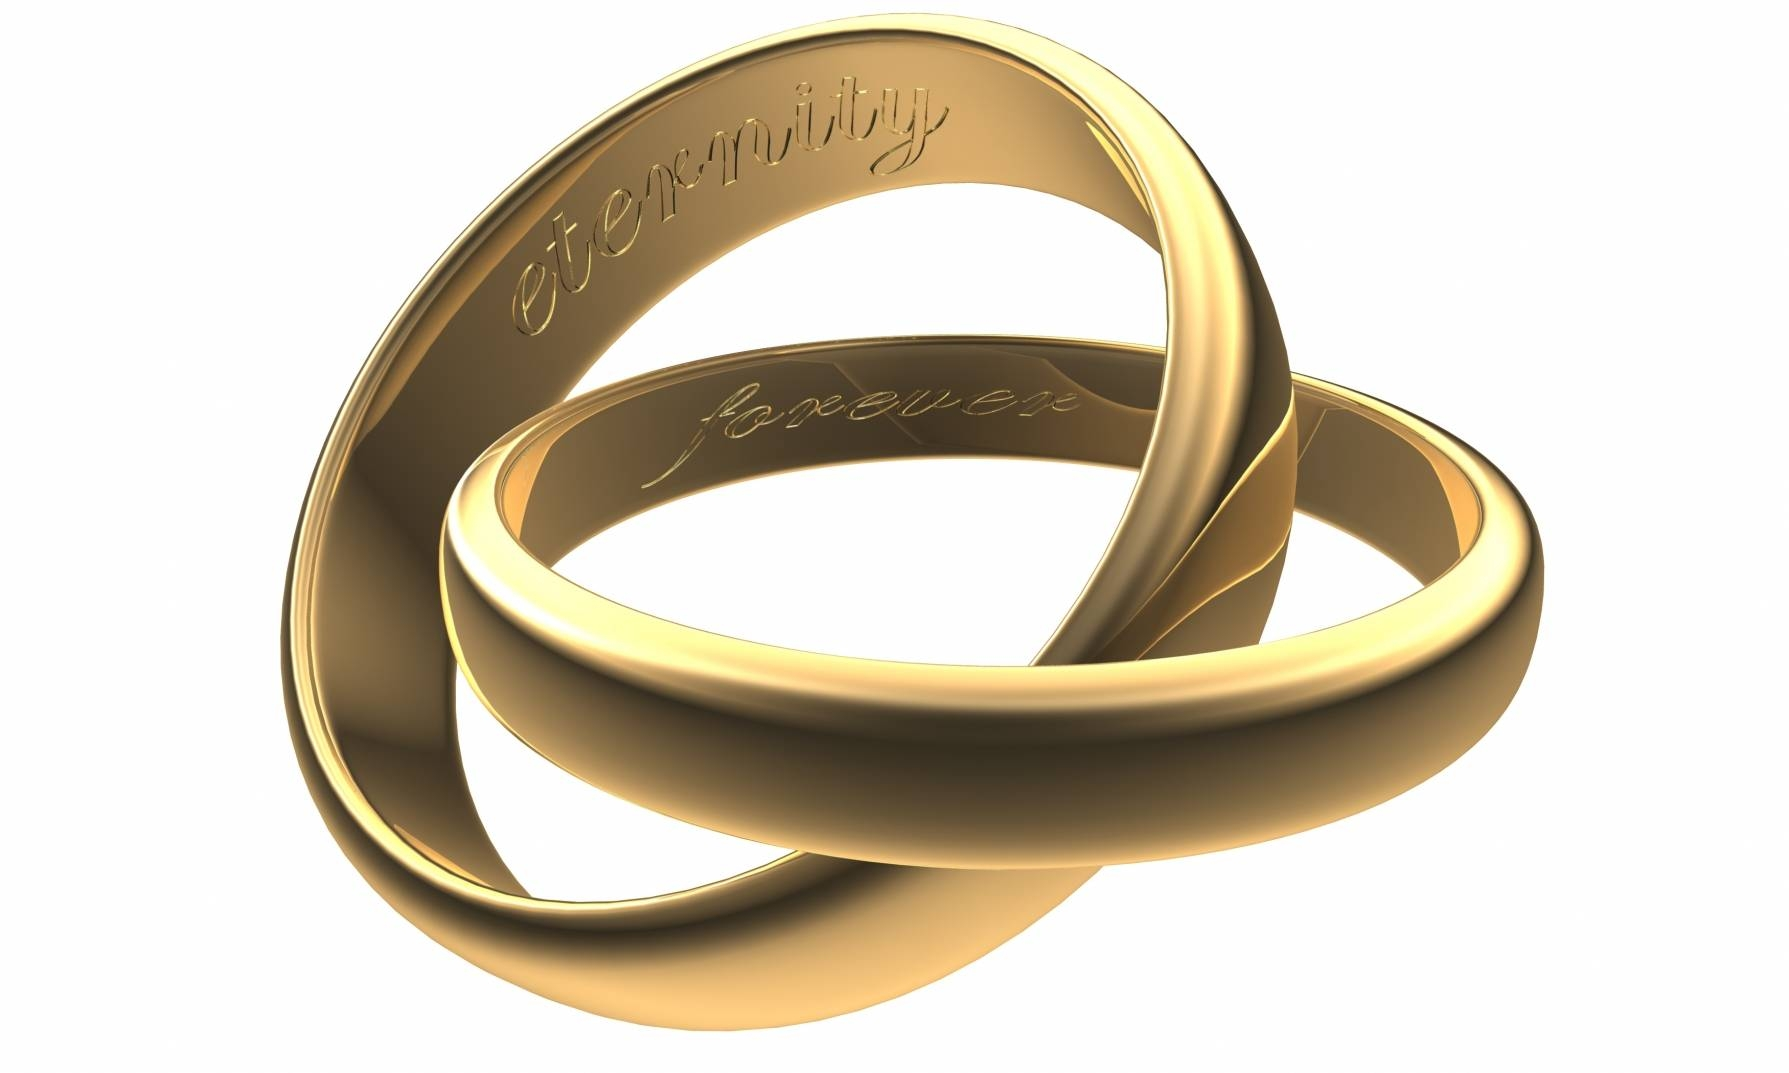 Wedding Rings : Wedding Ring Inscriptions Funny Wedding Ring Inside Fun Wedding Rings (View 13 of 15)